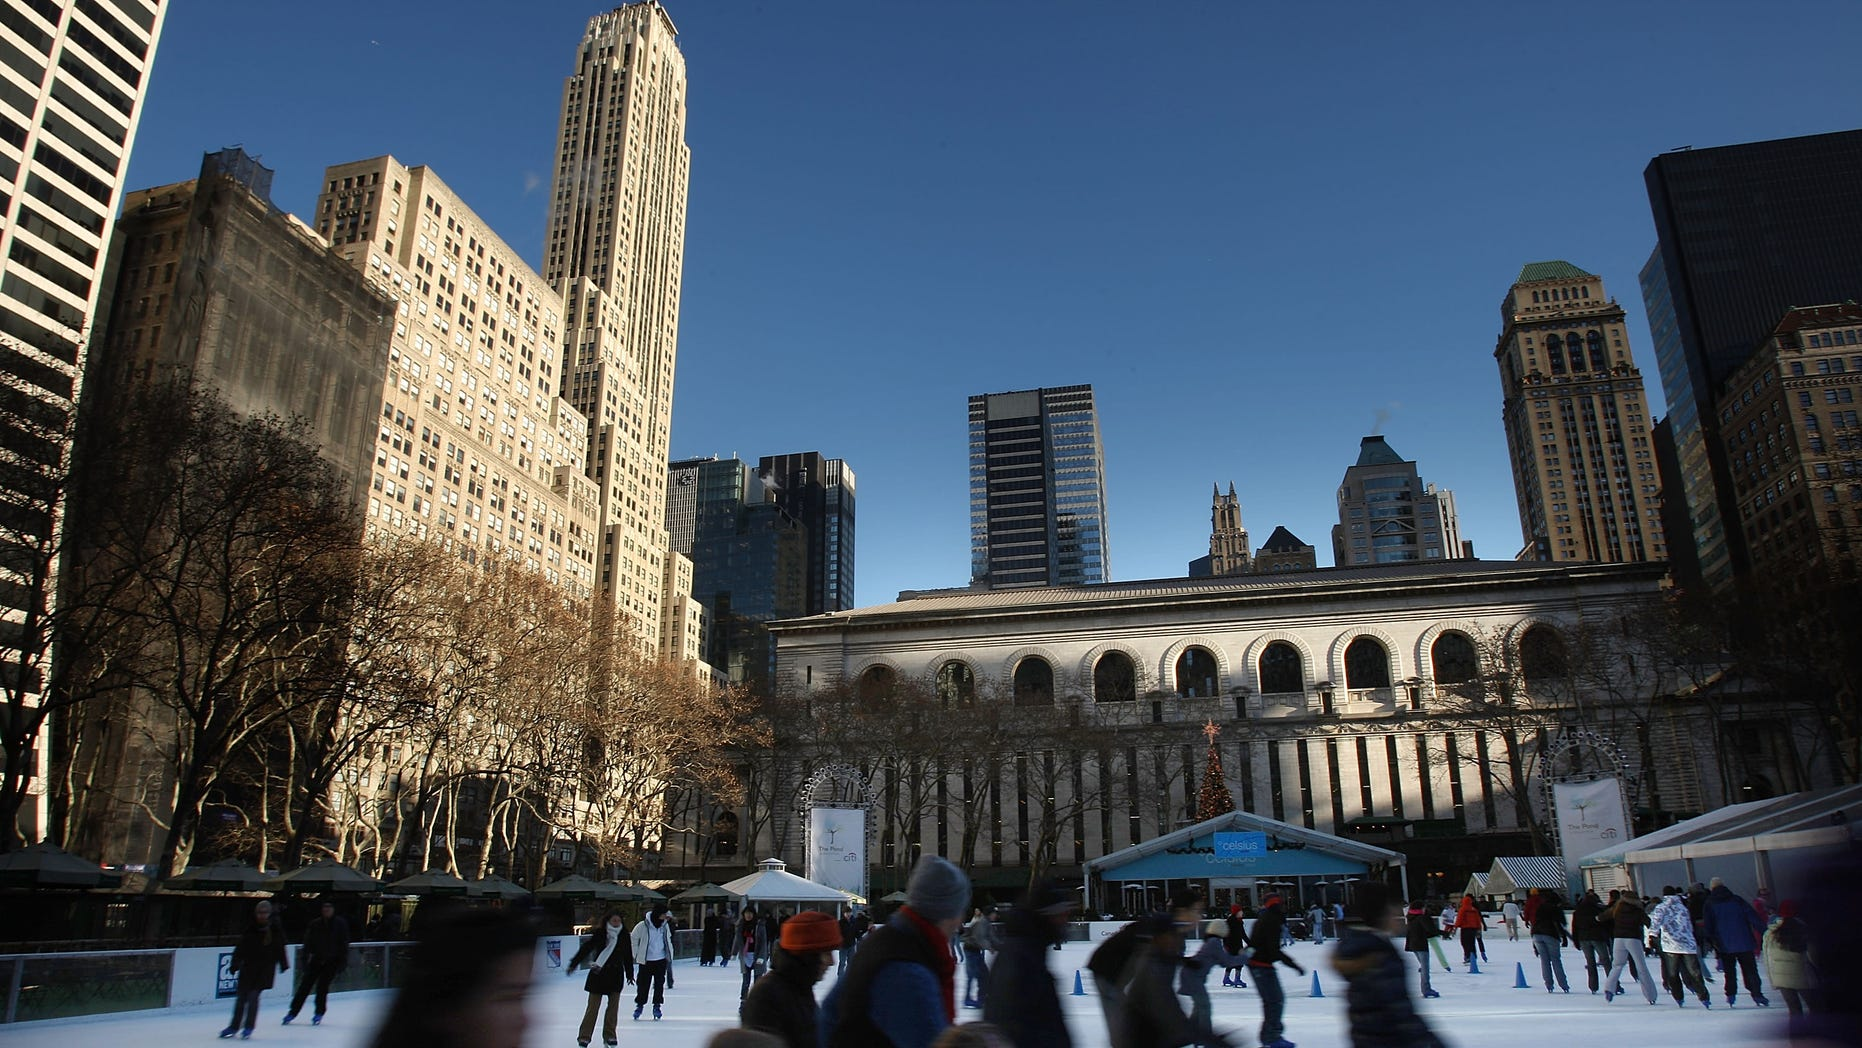 NEW YORK - JANUARY 03:  Ice skaters skate on the rink at Bryant Park January 3, 2008 in New York City. While much of the East Coast is experiencing freezing temperatures, significantly warmer weather is forecast for the weekend.  (Photo by Spencer Platt/Getty Images)